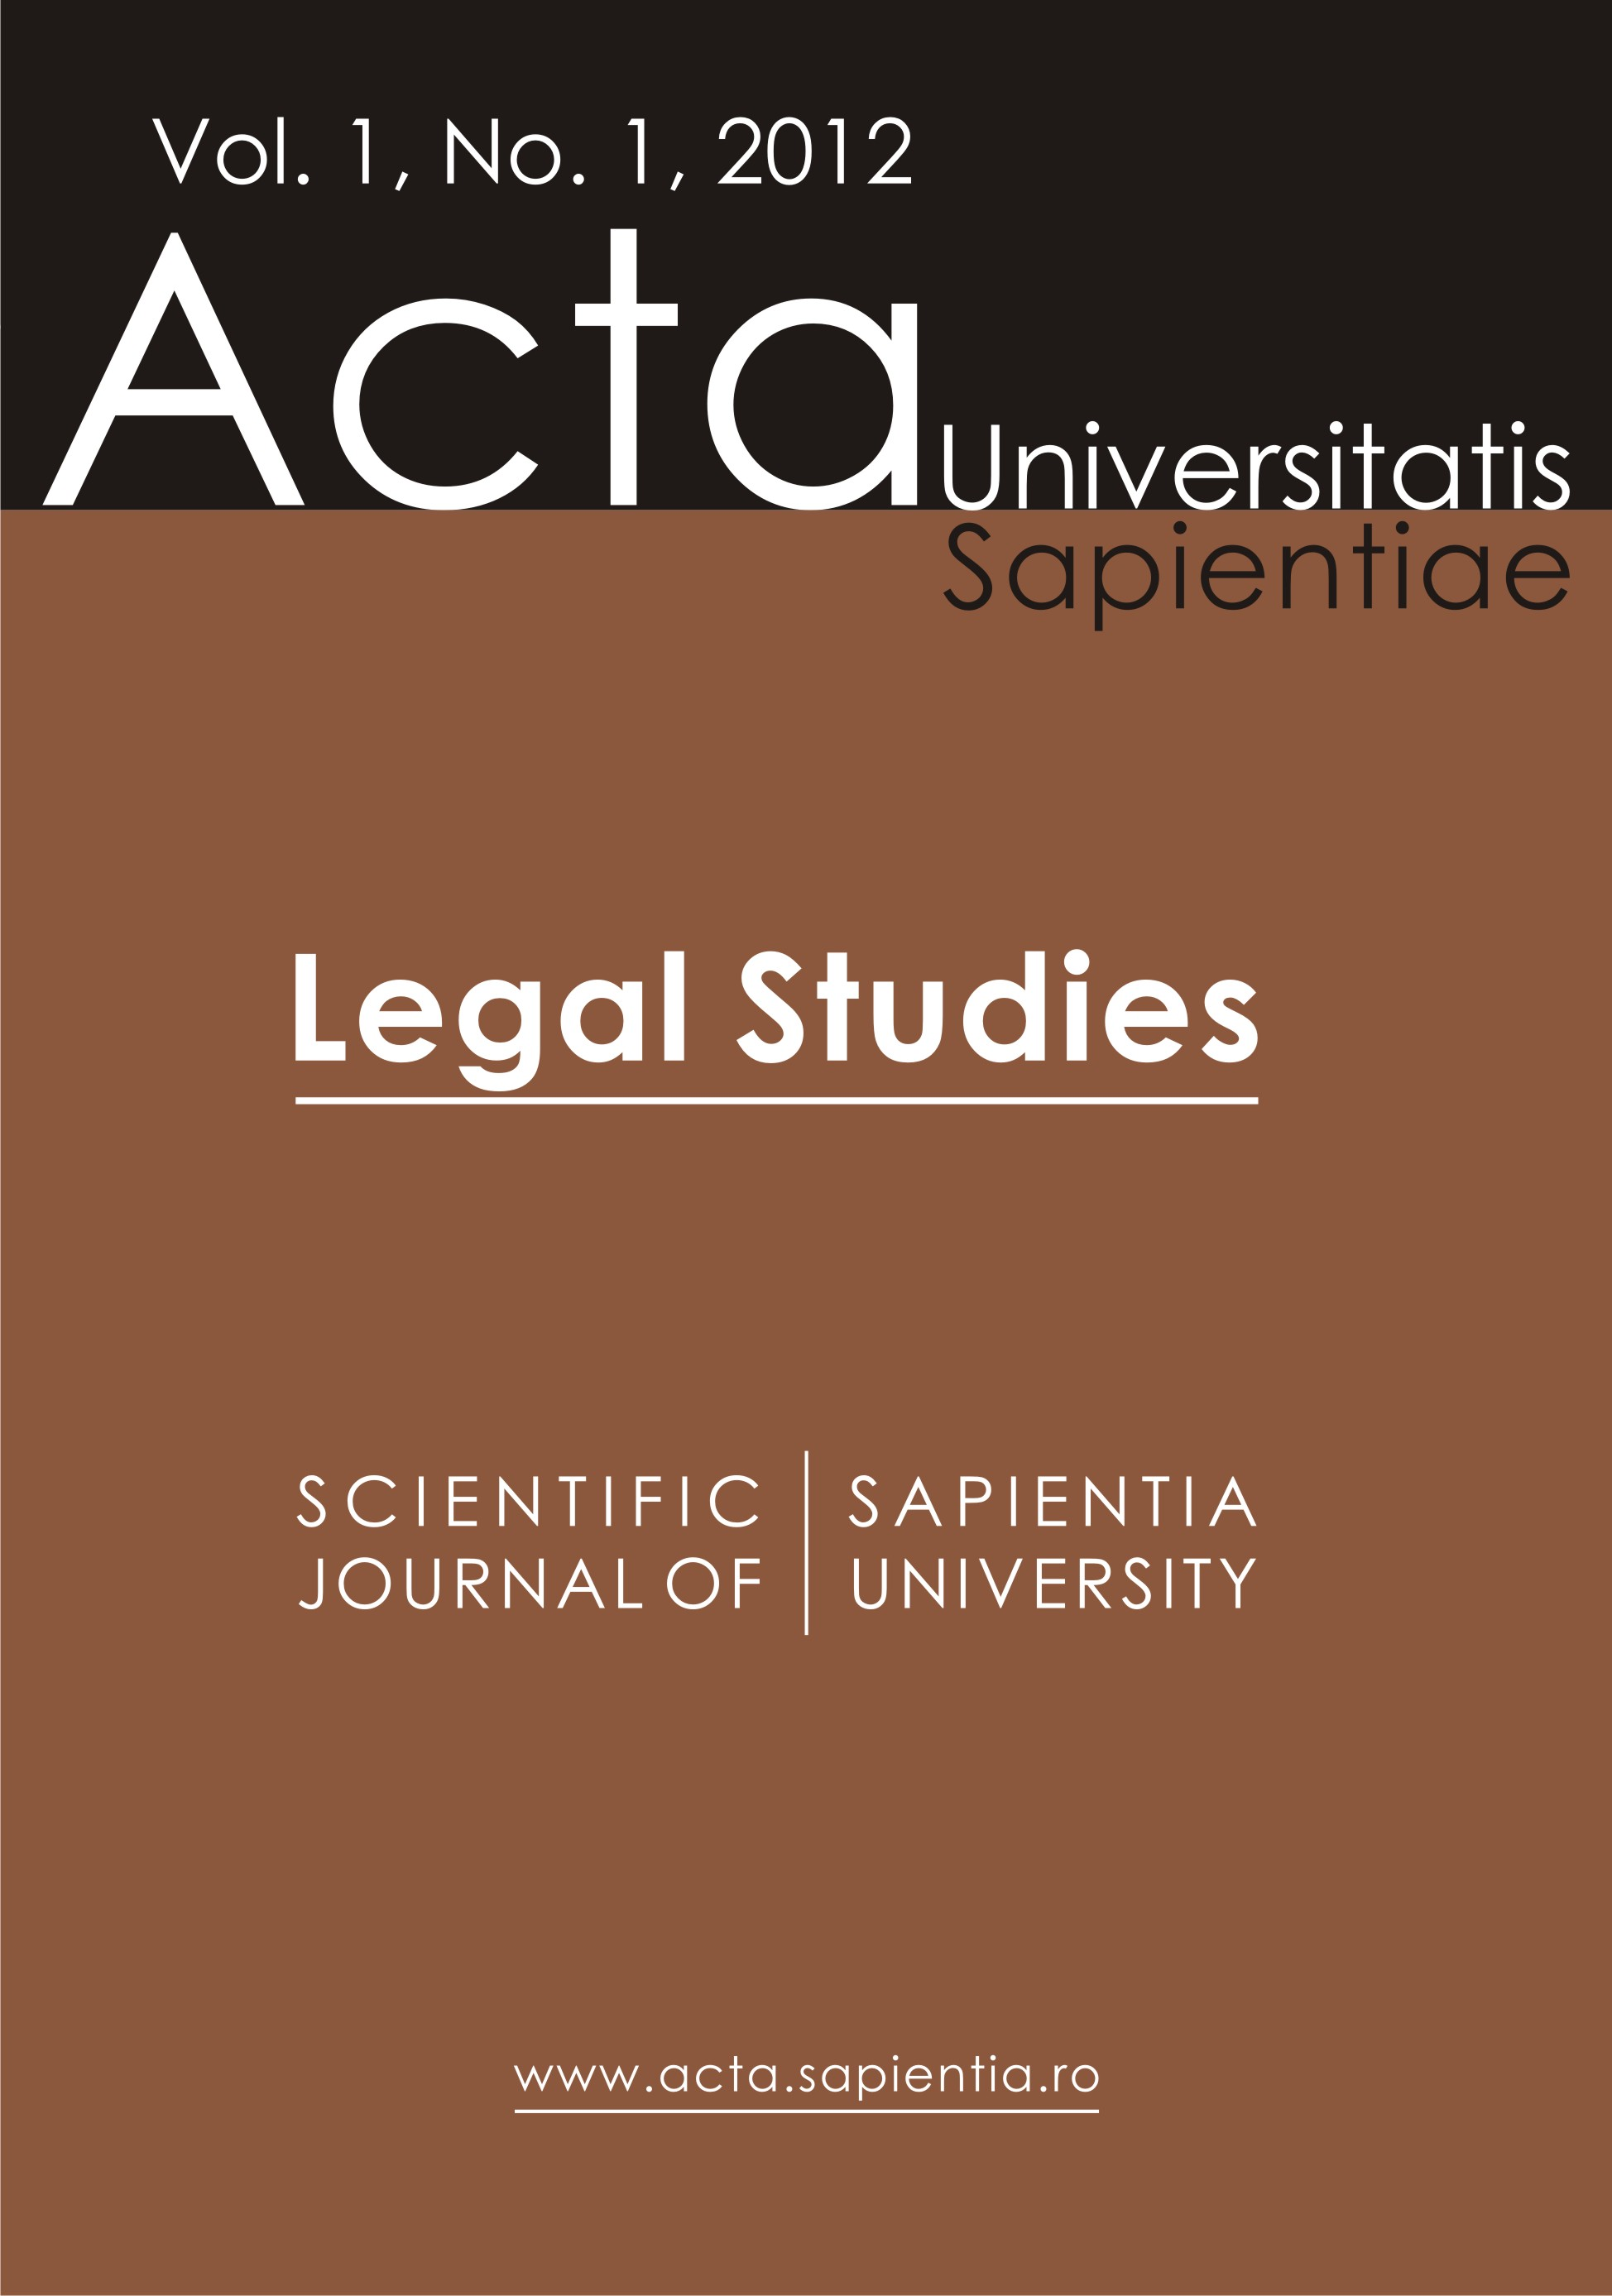 Acta Universitatis Sapientiae, Legal Studies Cover Image